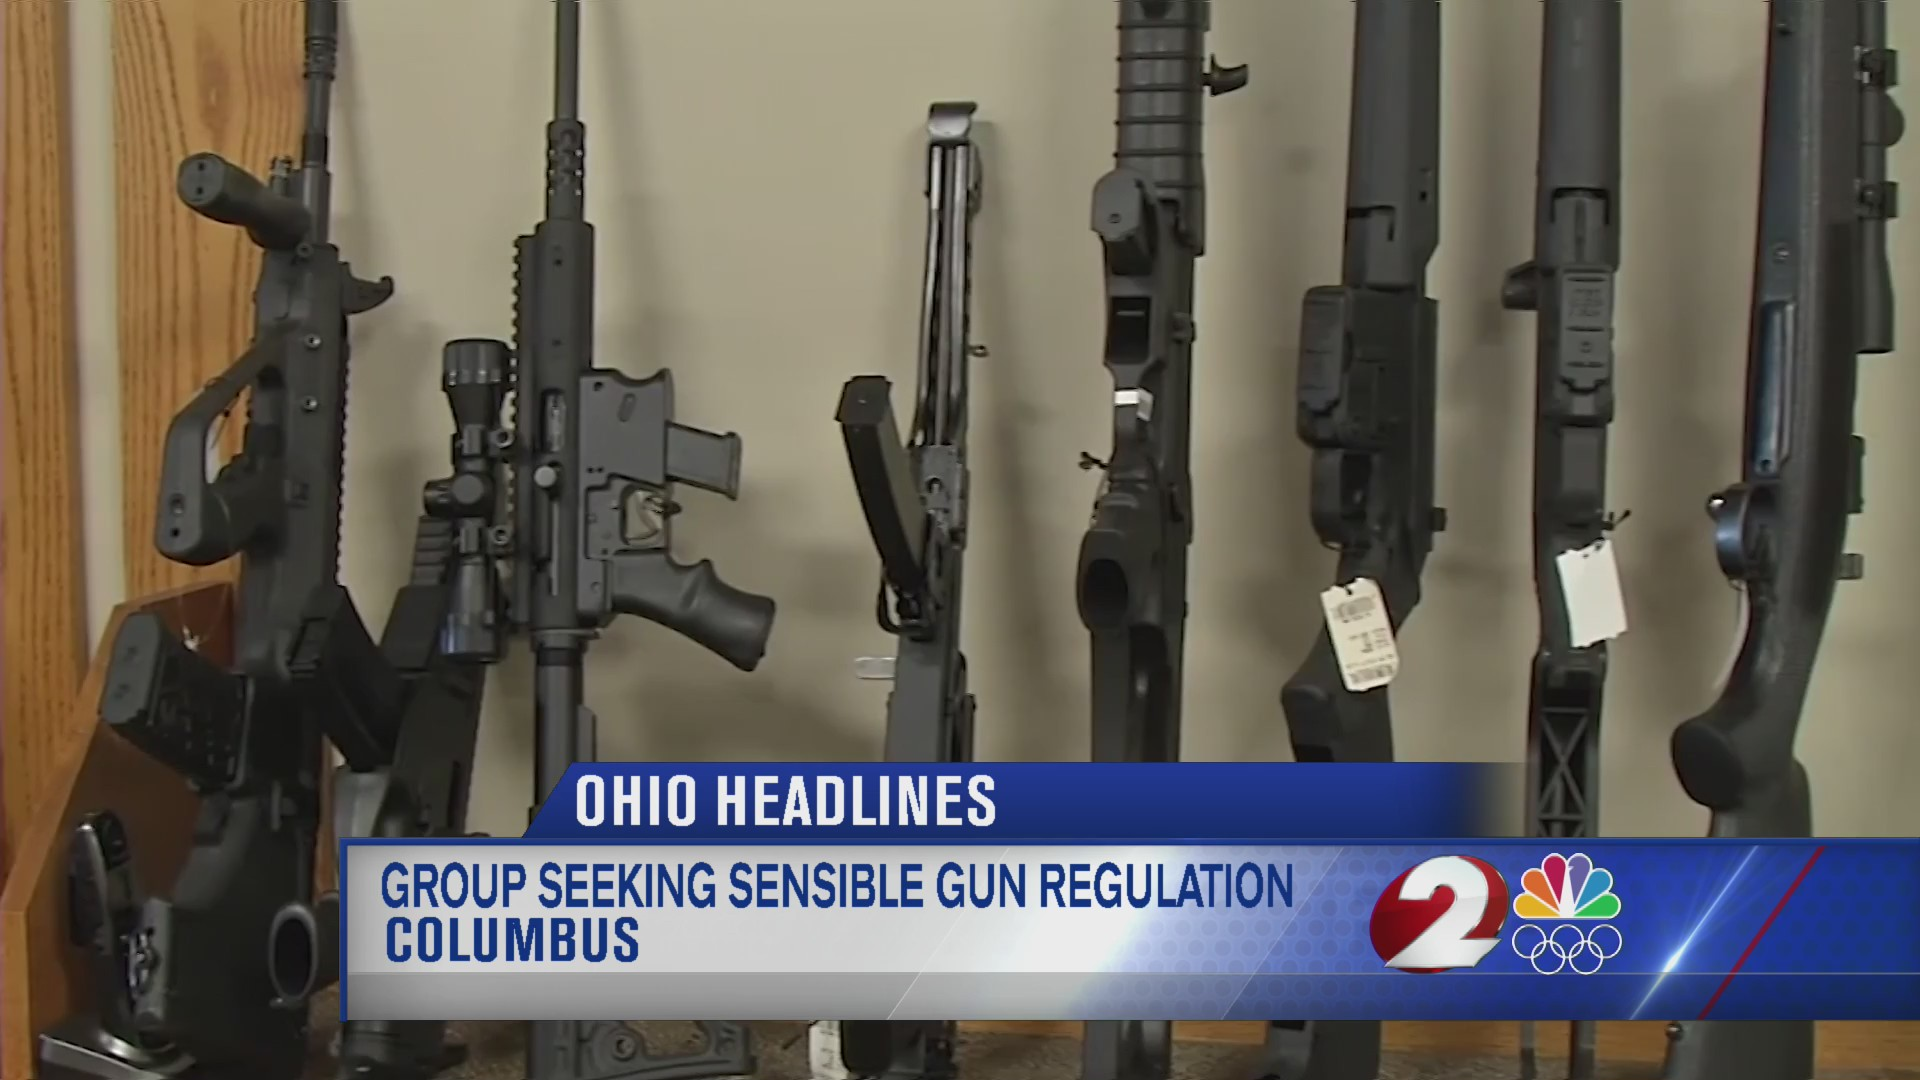 Group seeking sensible gun regulation